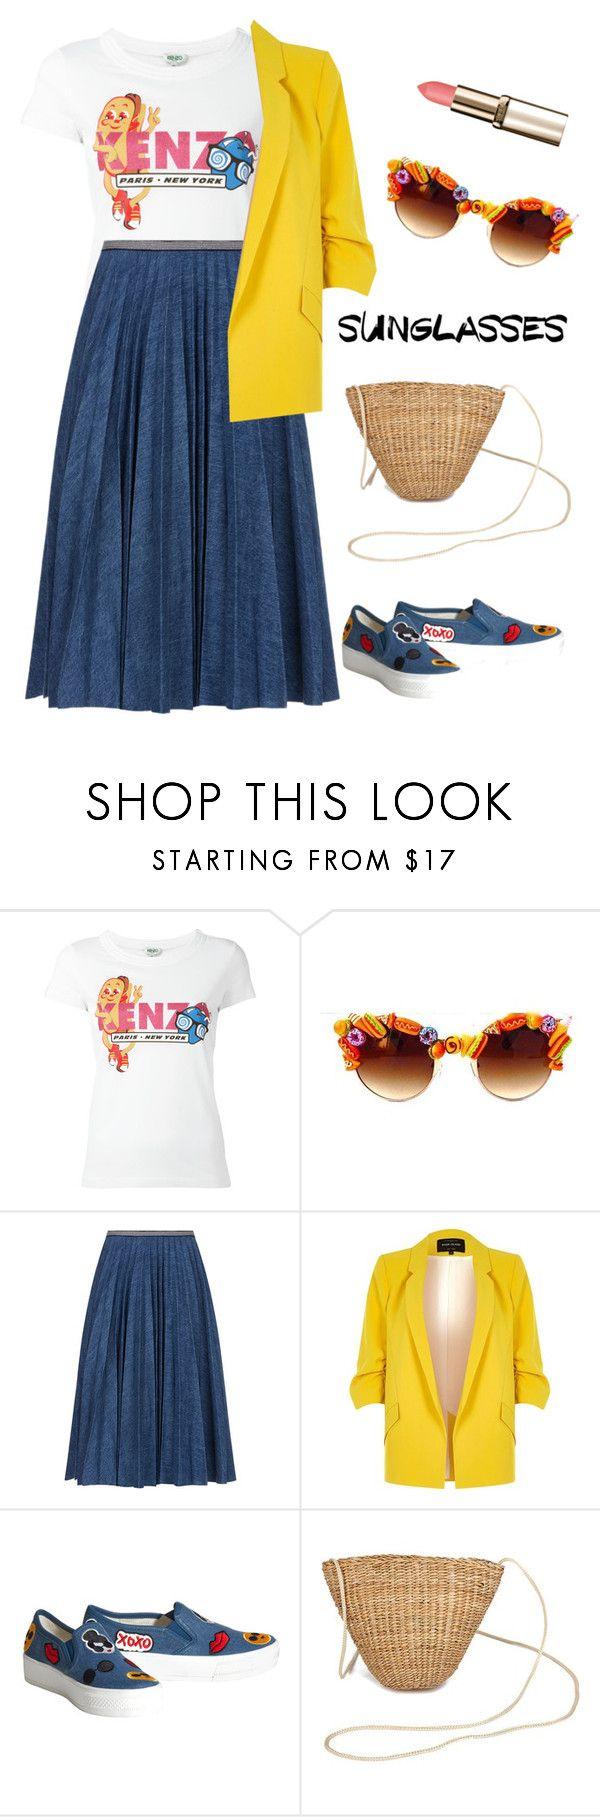 """""""funny vintage sunglasses"""" by katymill ❤ liked on Polyvore featuring Kenzo, Gasoline Glamour, Leur Logette, River Island, Alice + Olivia, vintage, retro and RetroSunglasses"""